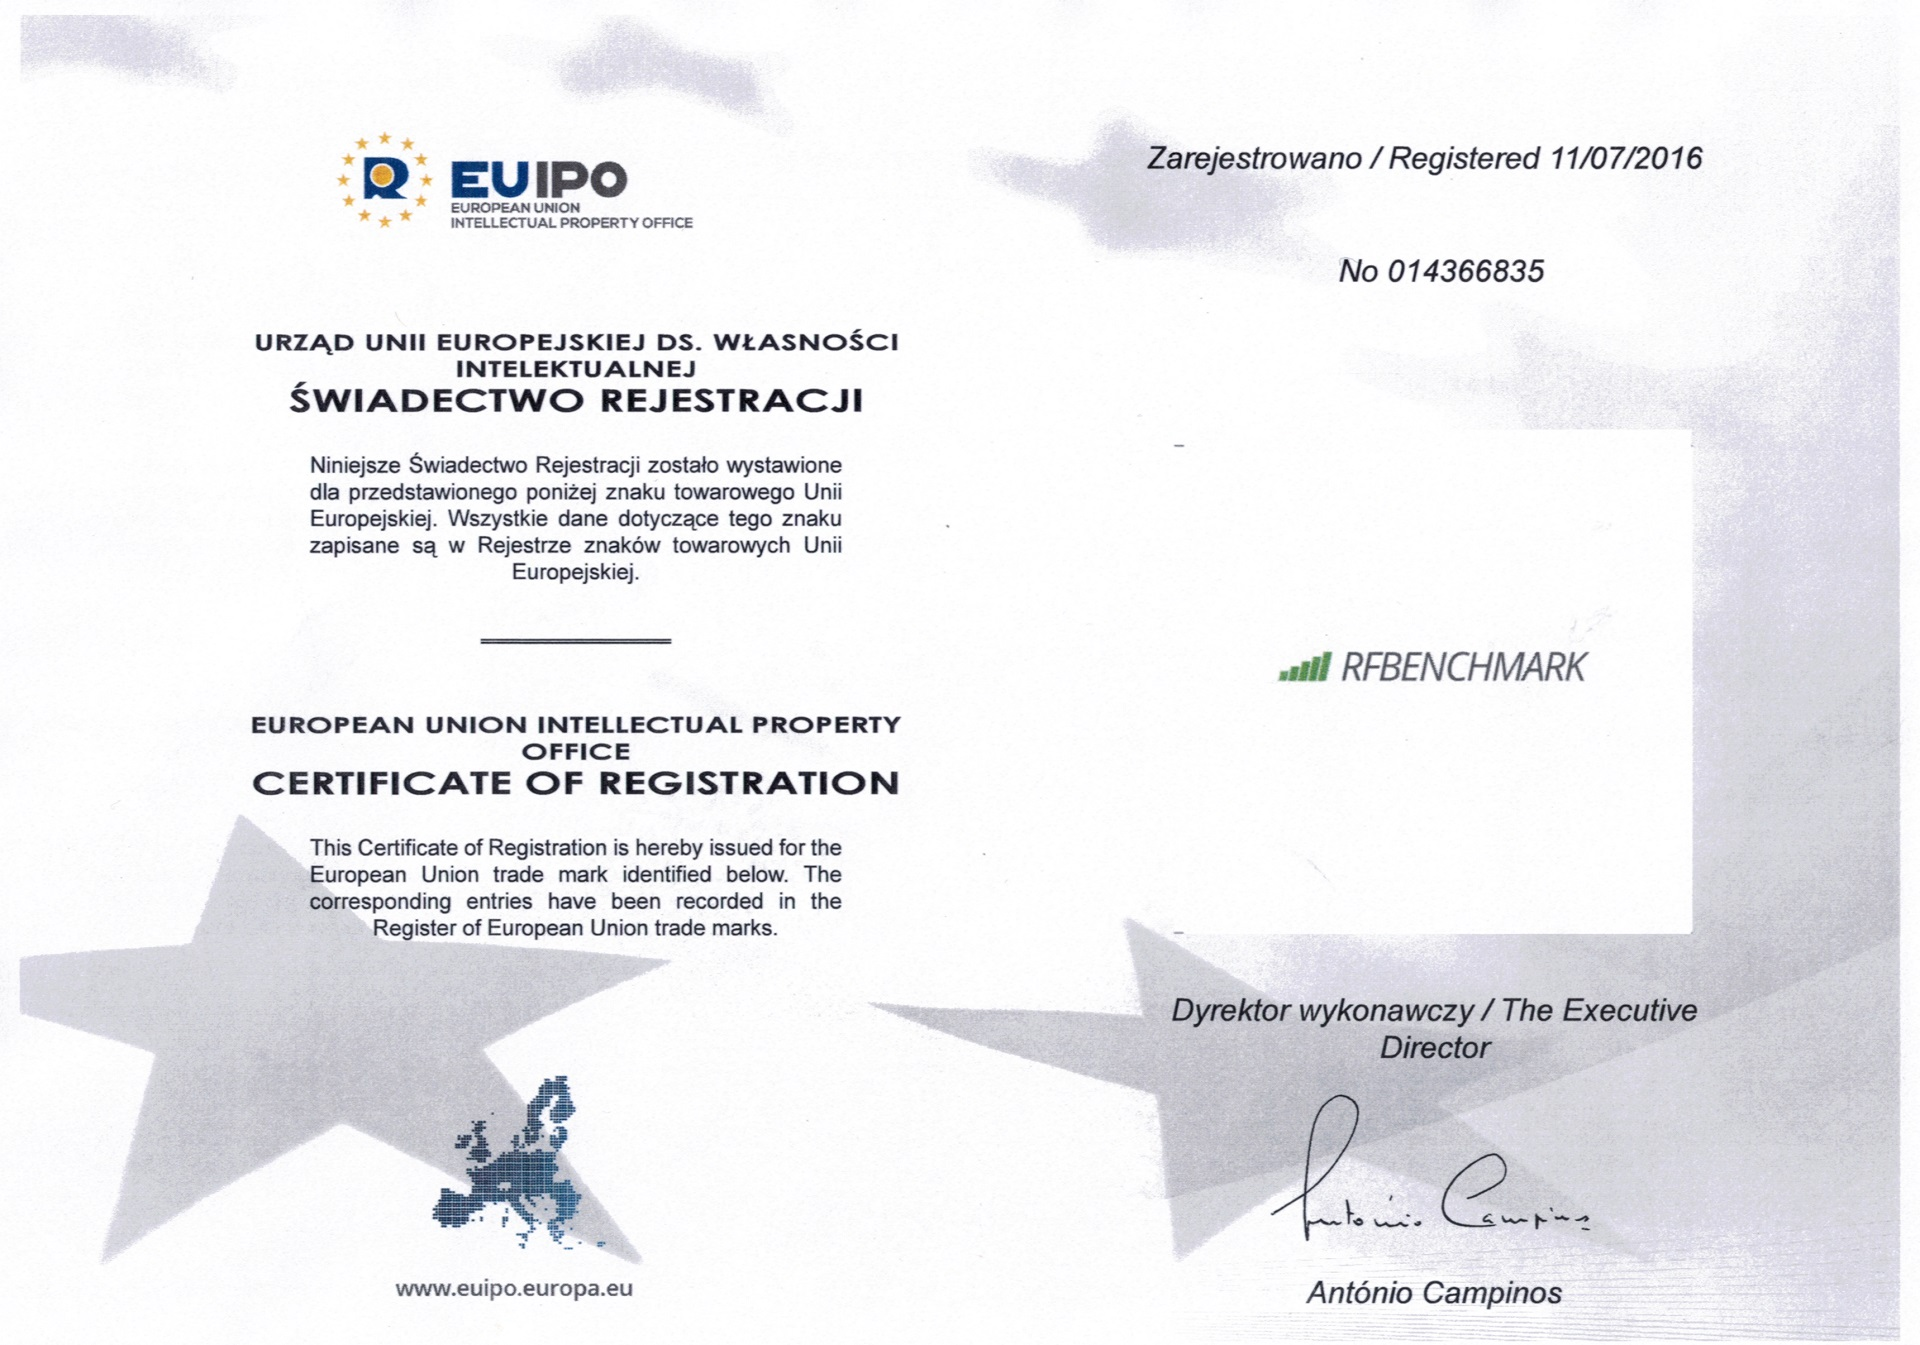 RFBenchmark_certifcate_of_registration